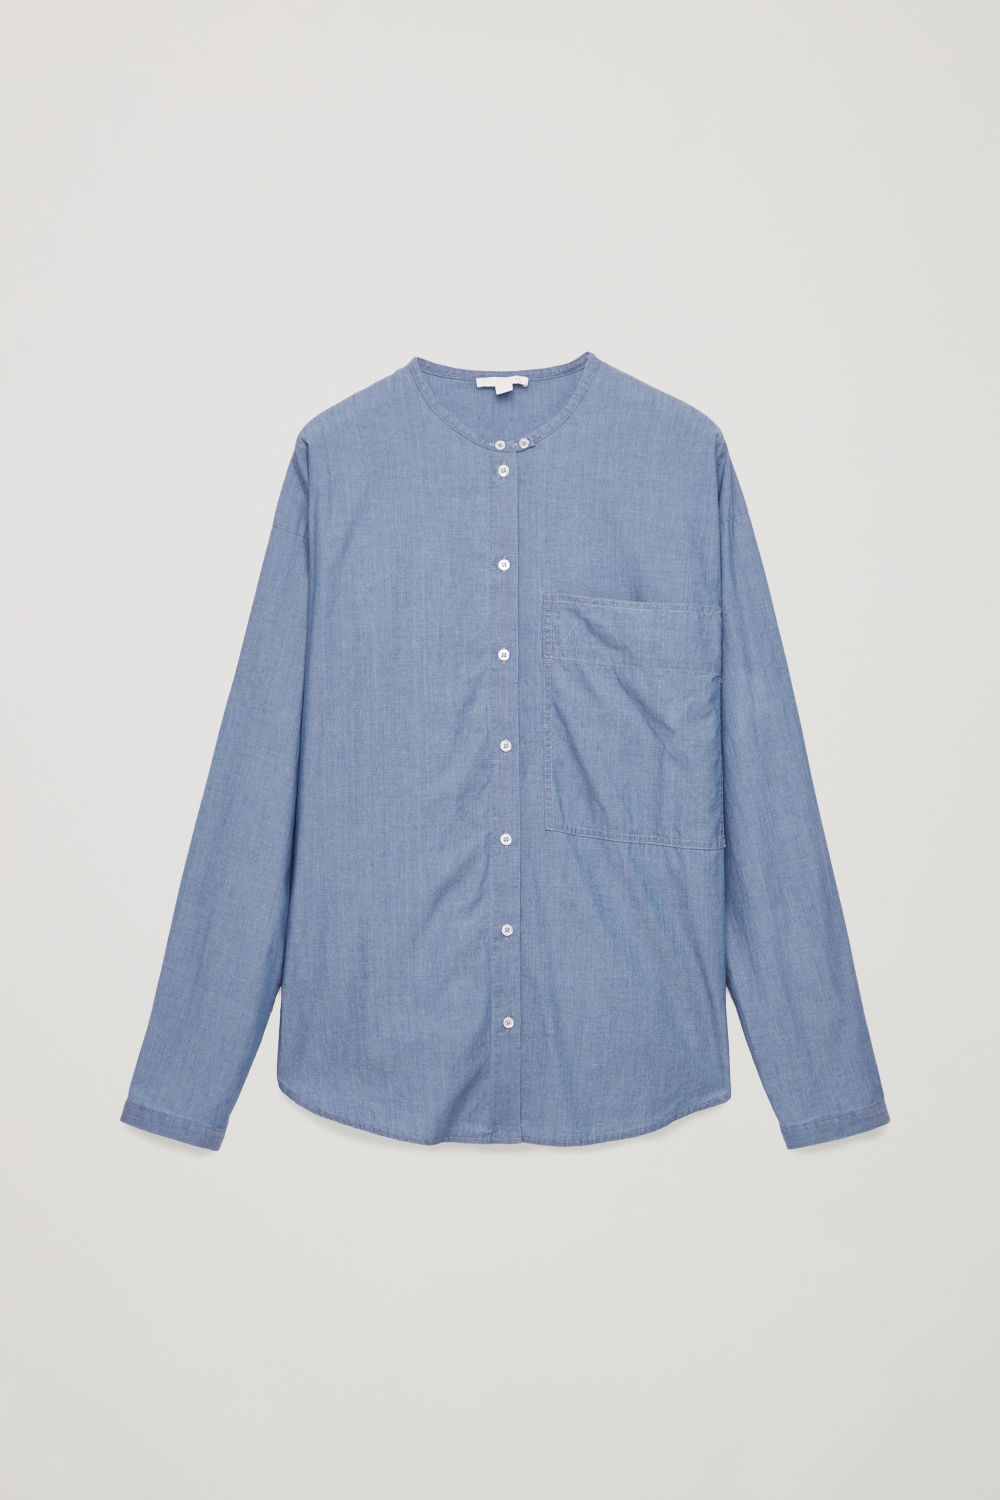 CIRCLE-SHAPE GRANDAD SHIRT